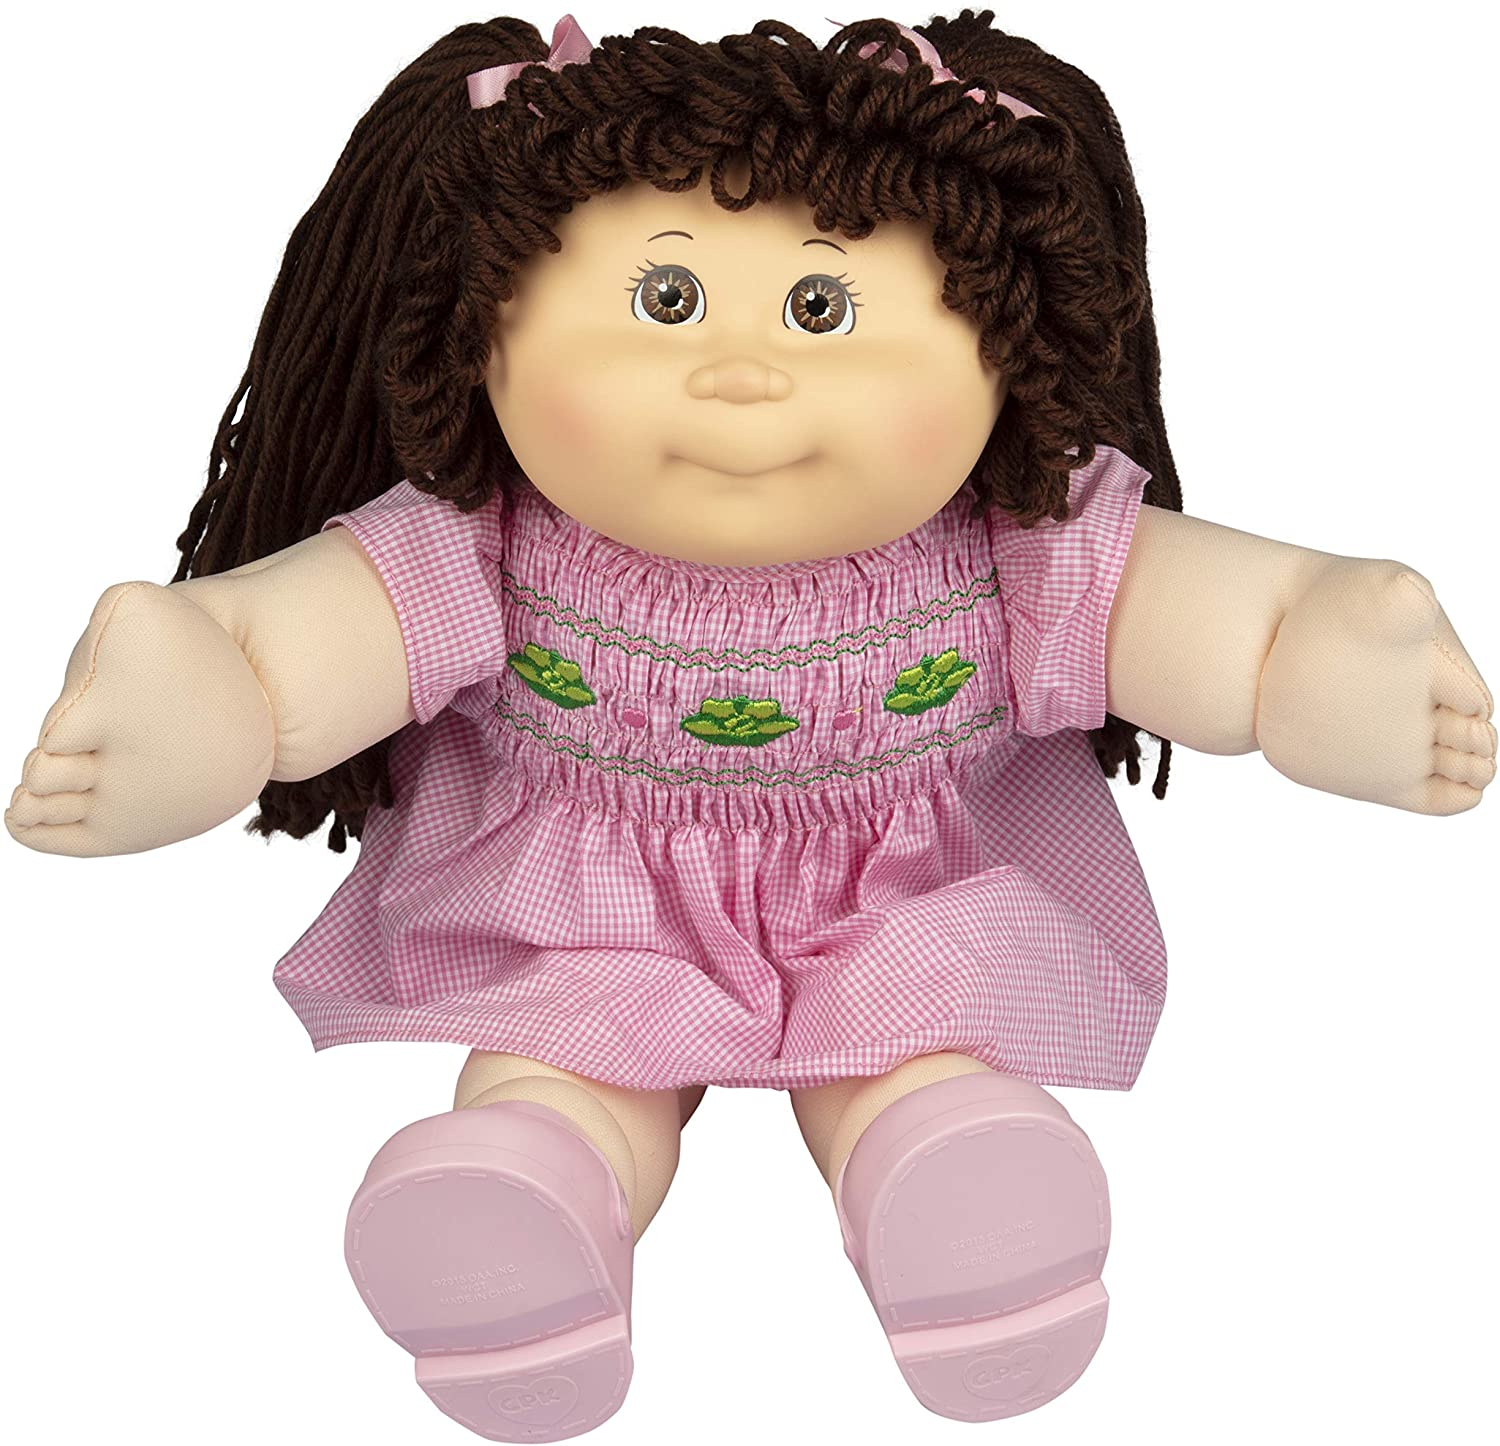 Max 44% OFF Cabbage Patch Kids Vintage Retro Style Original Yarn Doll Fashionable Hair -